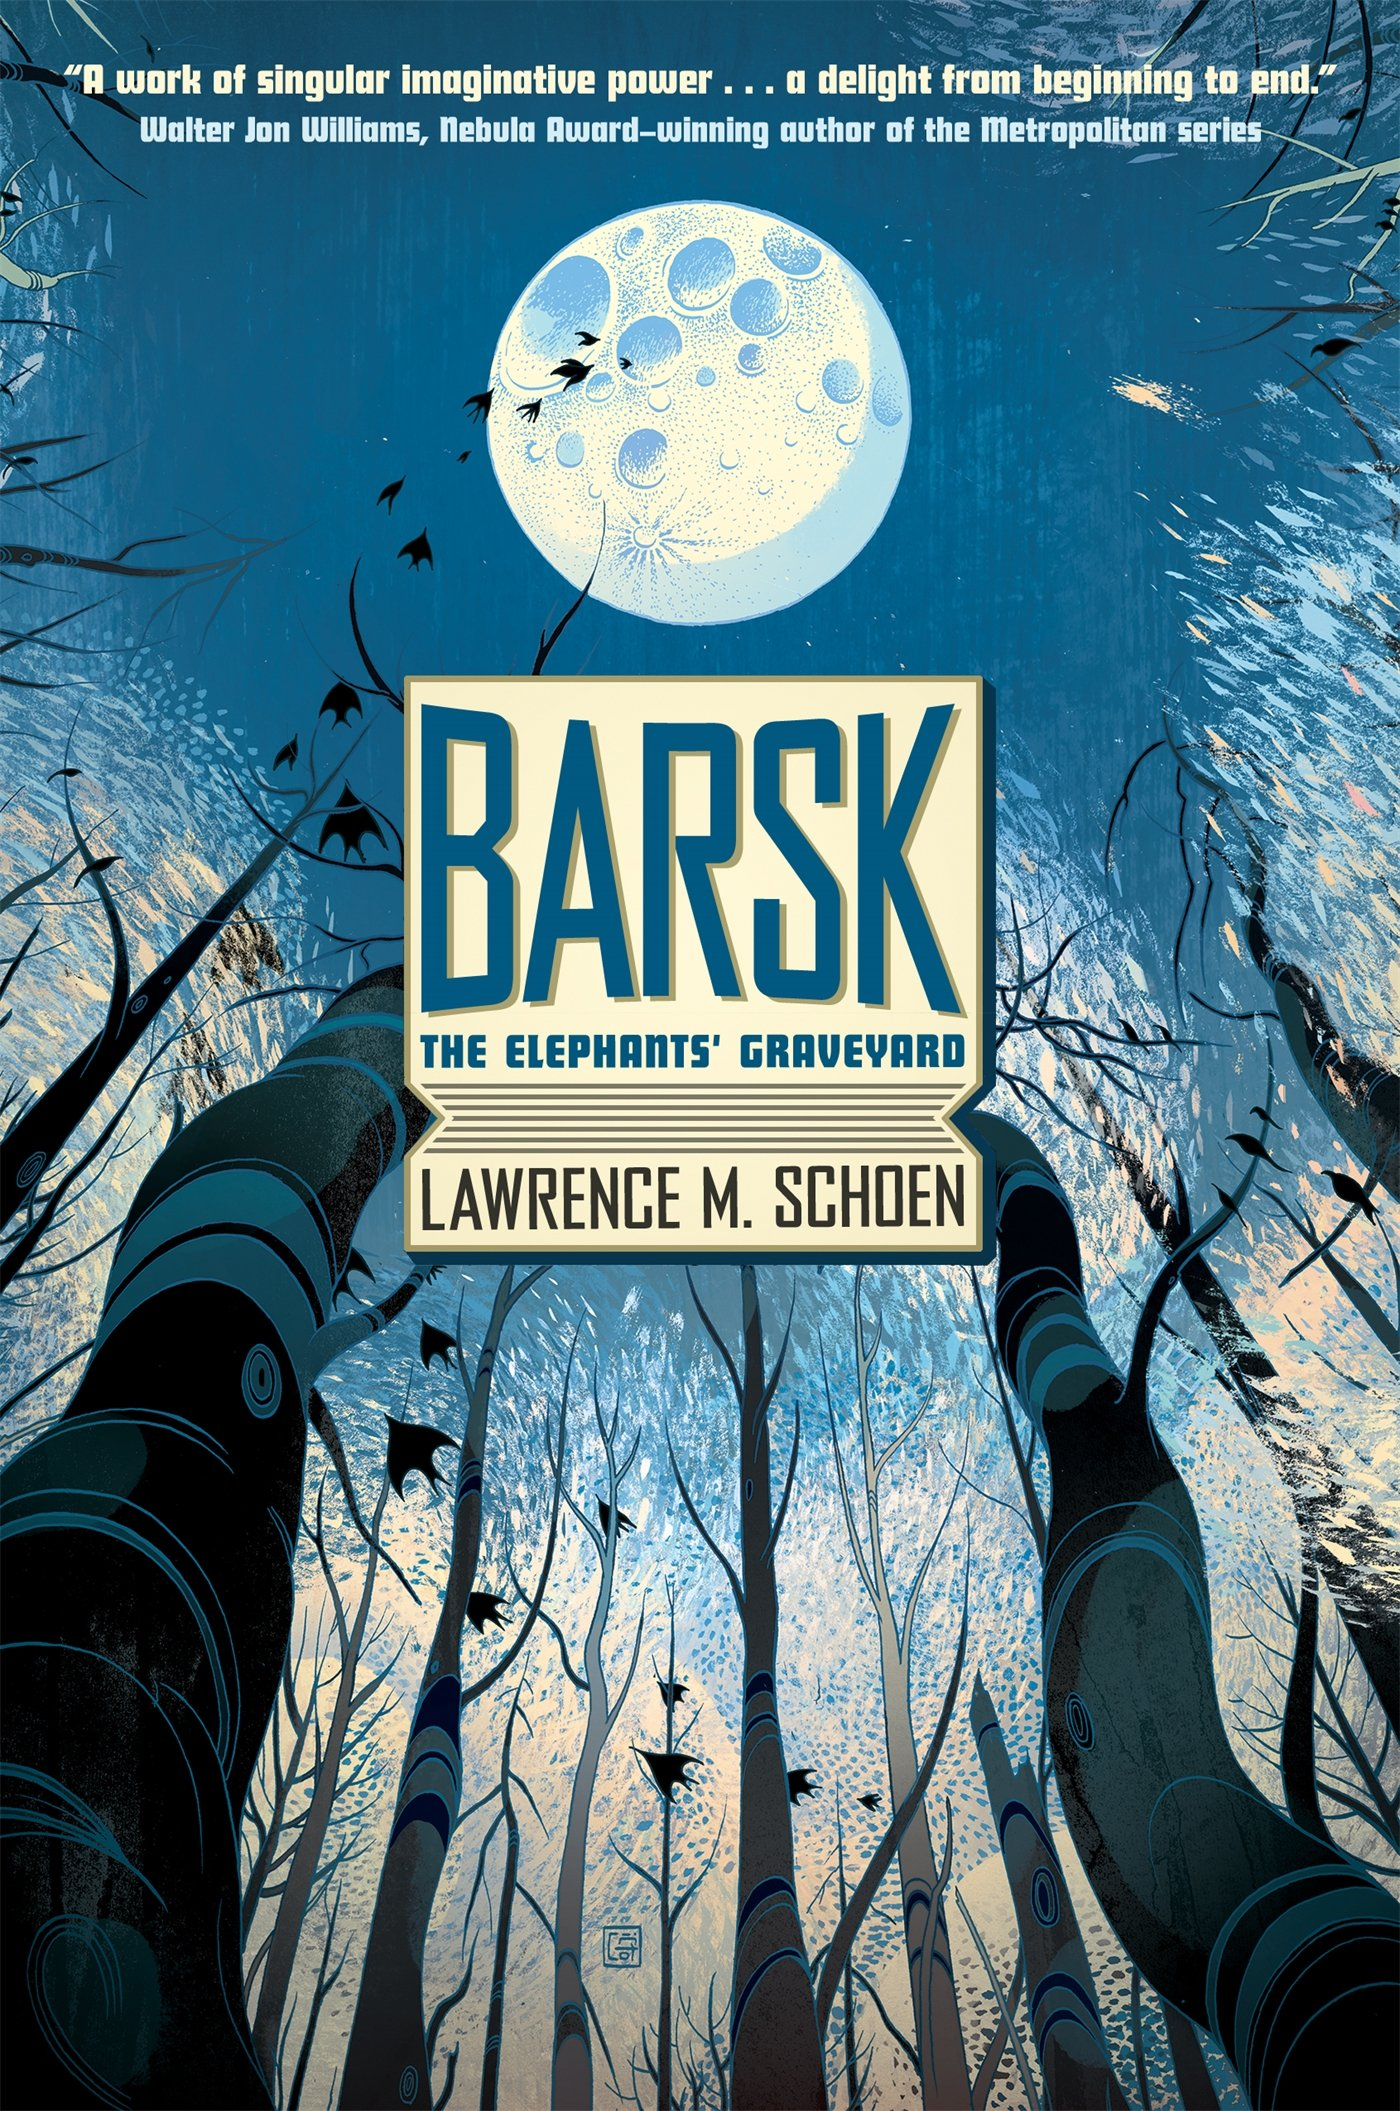 Image result for barsk the elephants' graveyard